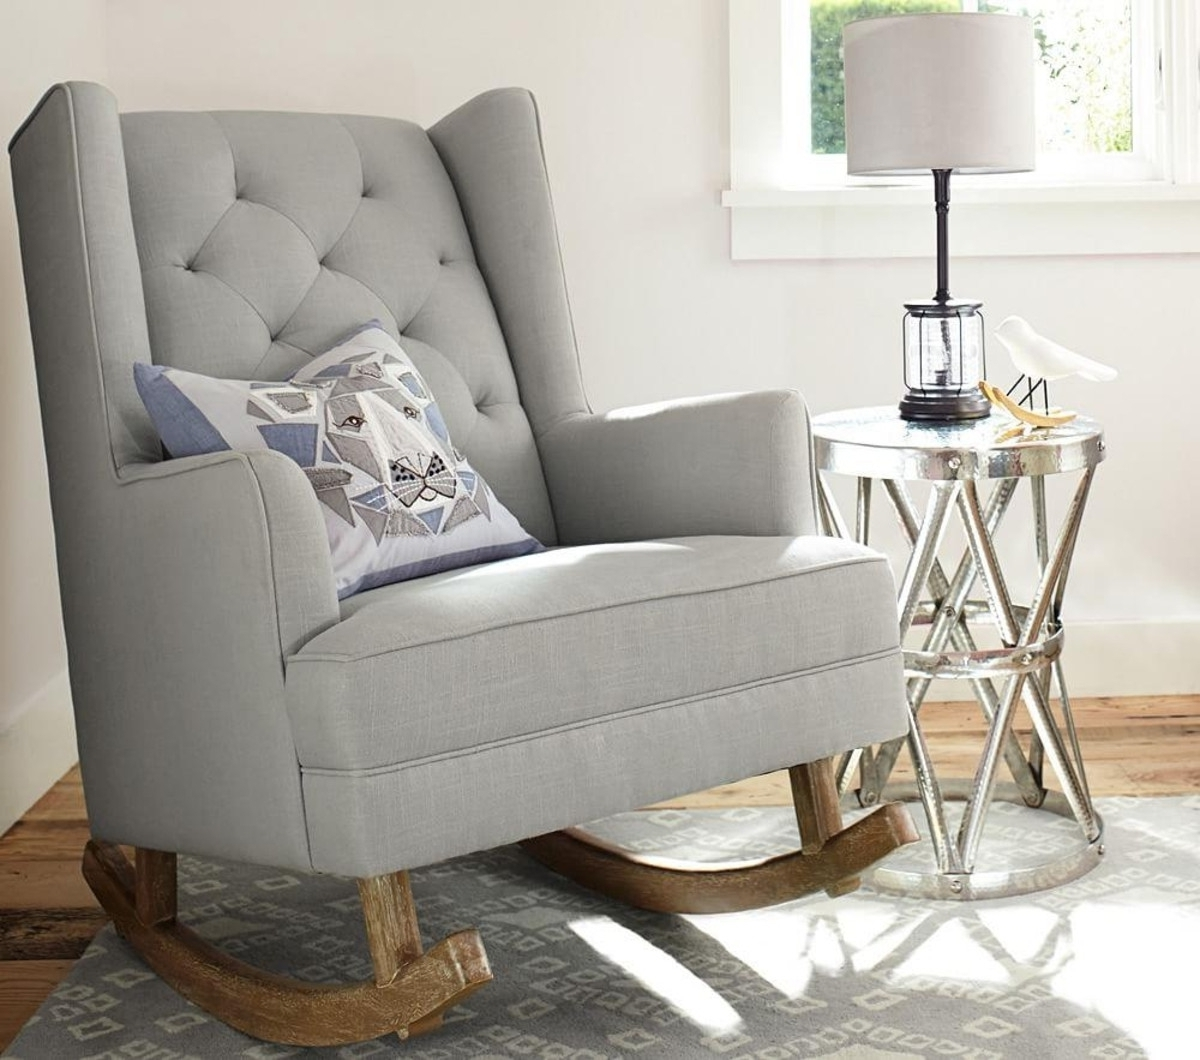 Uncategorized Nursery Chair Rocking Chairs For Cheap I Buy Ideas On For Preferred Rocking Chairs For Nursing (View 15 of 15)